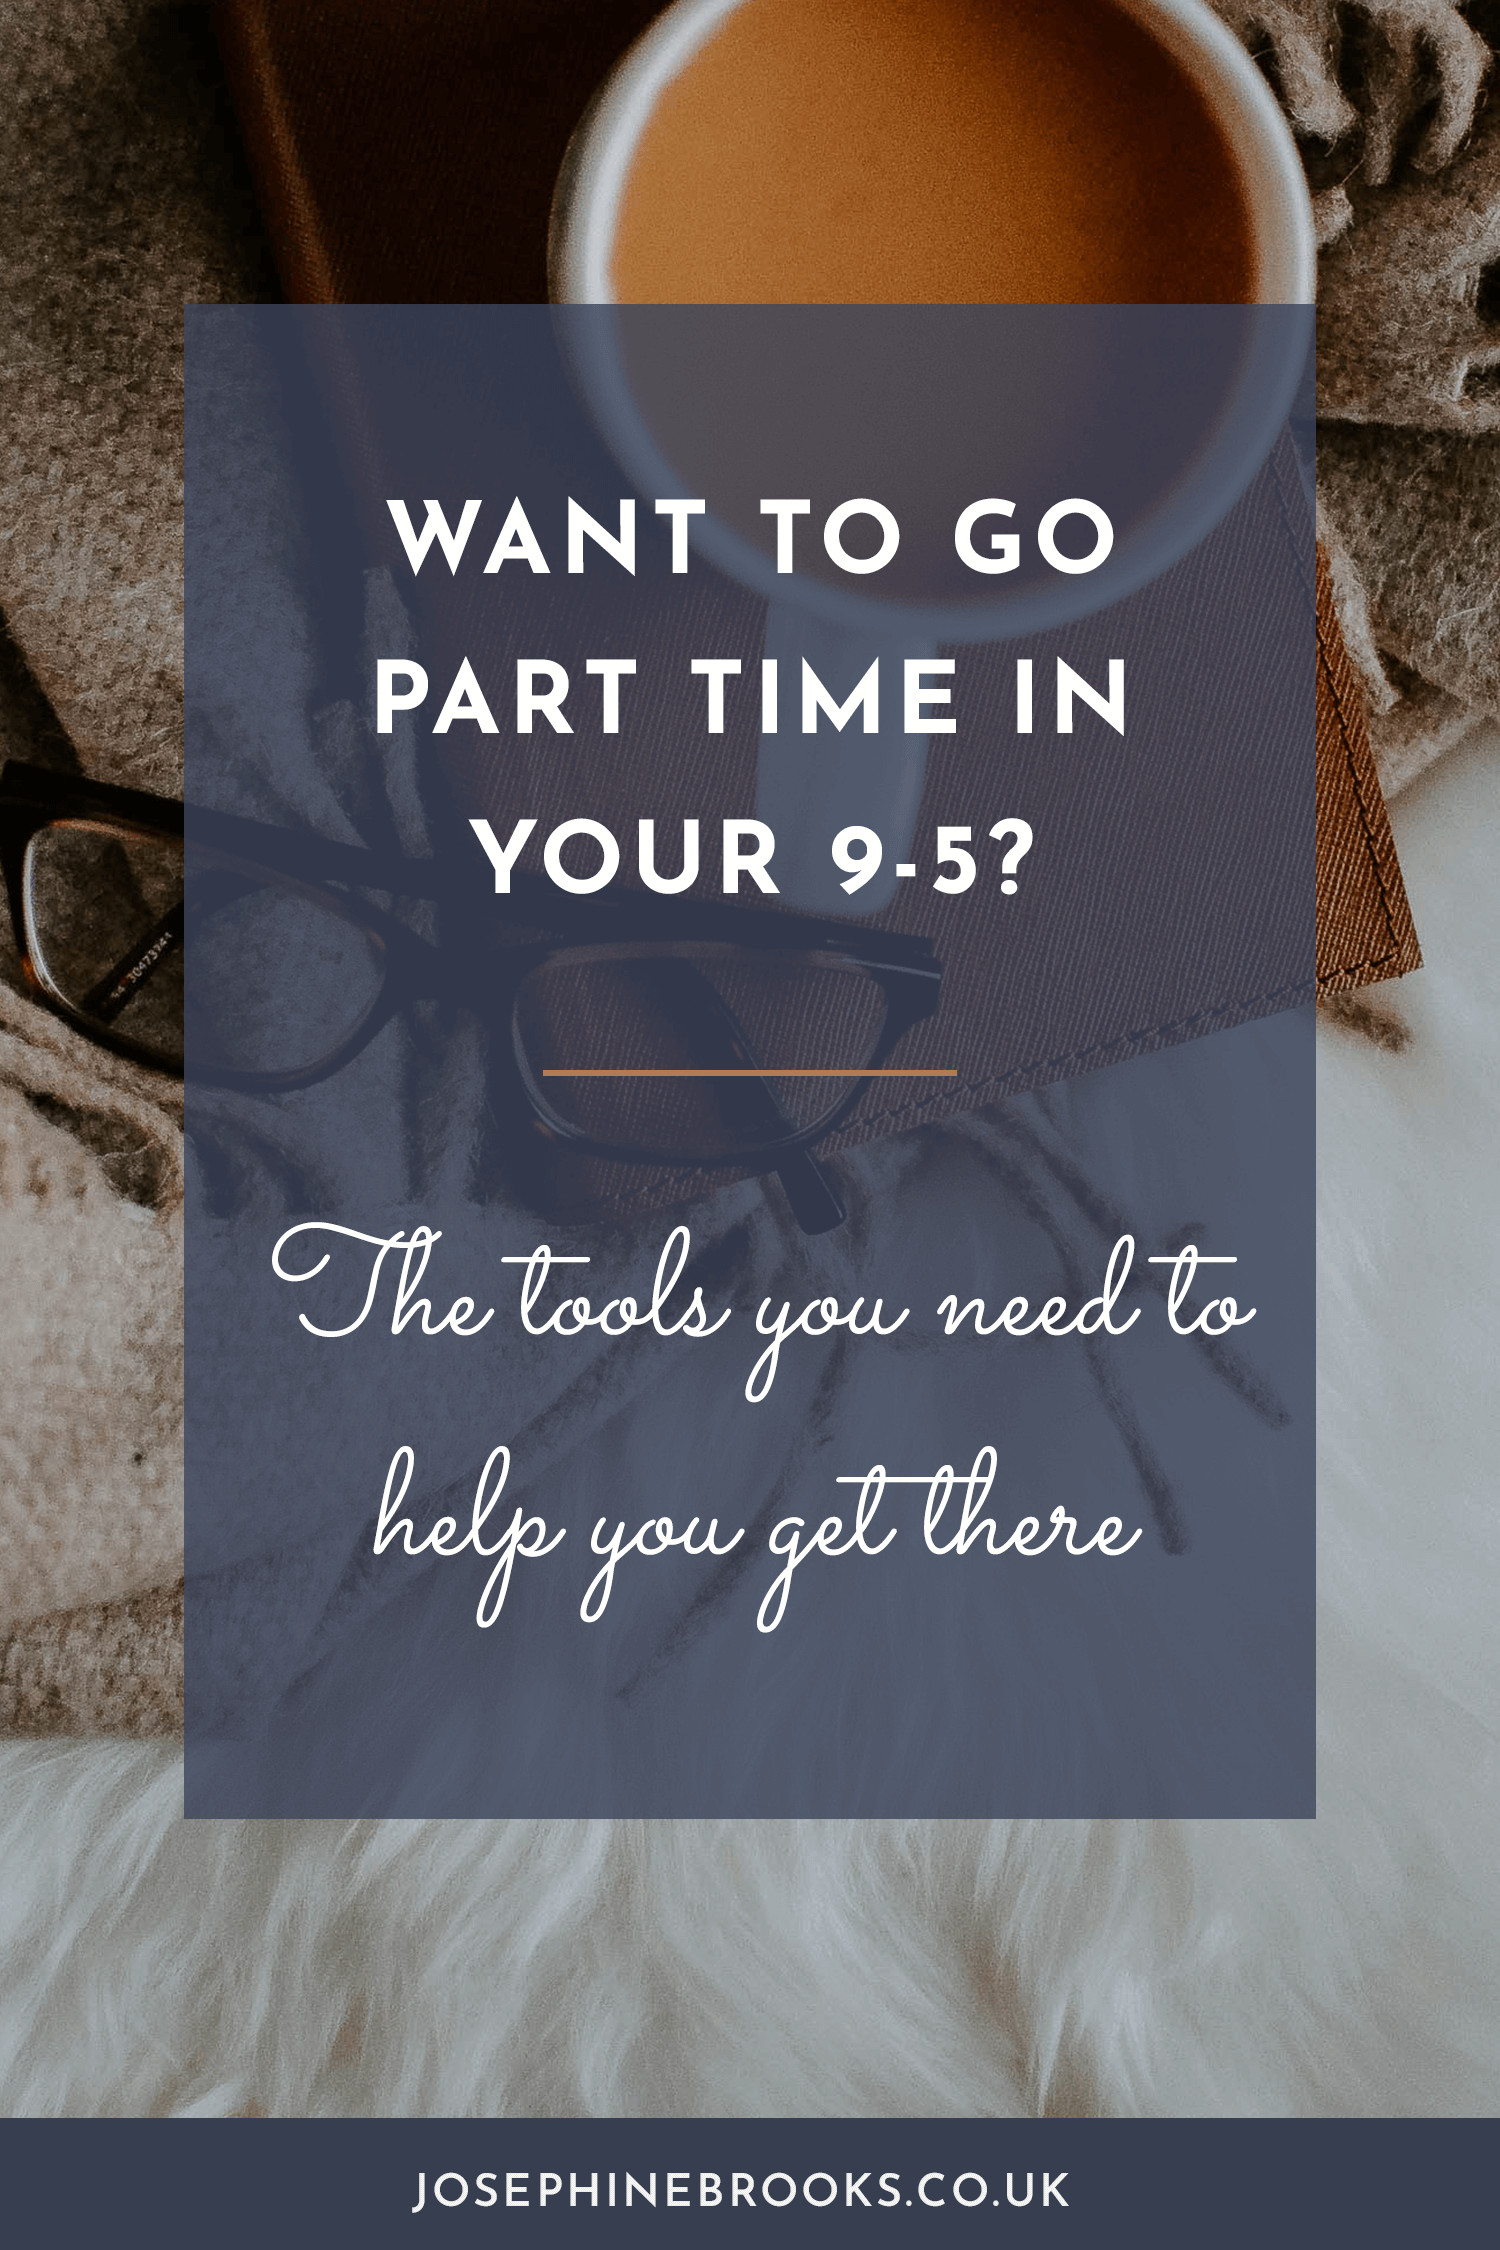 Want to go part-time in your 9-5 - the tools you need to request part time hours and flexible working at work